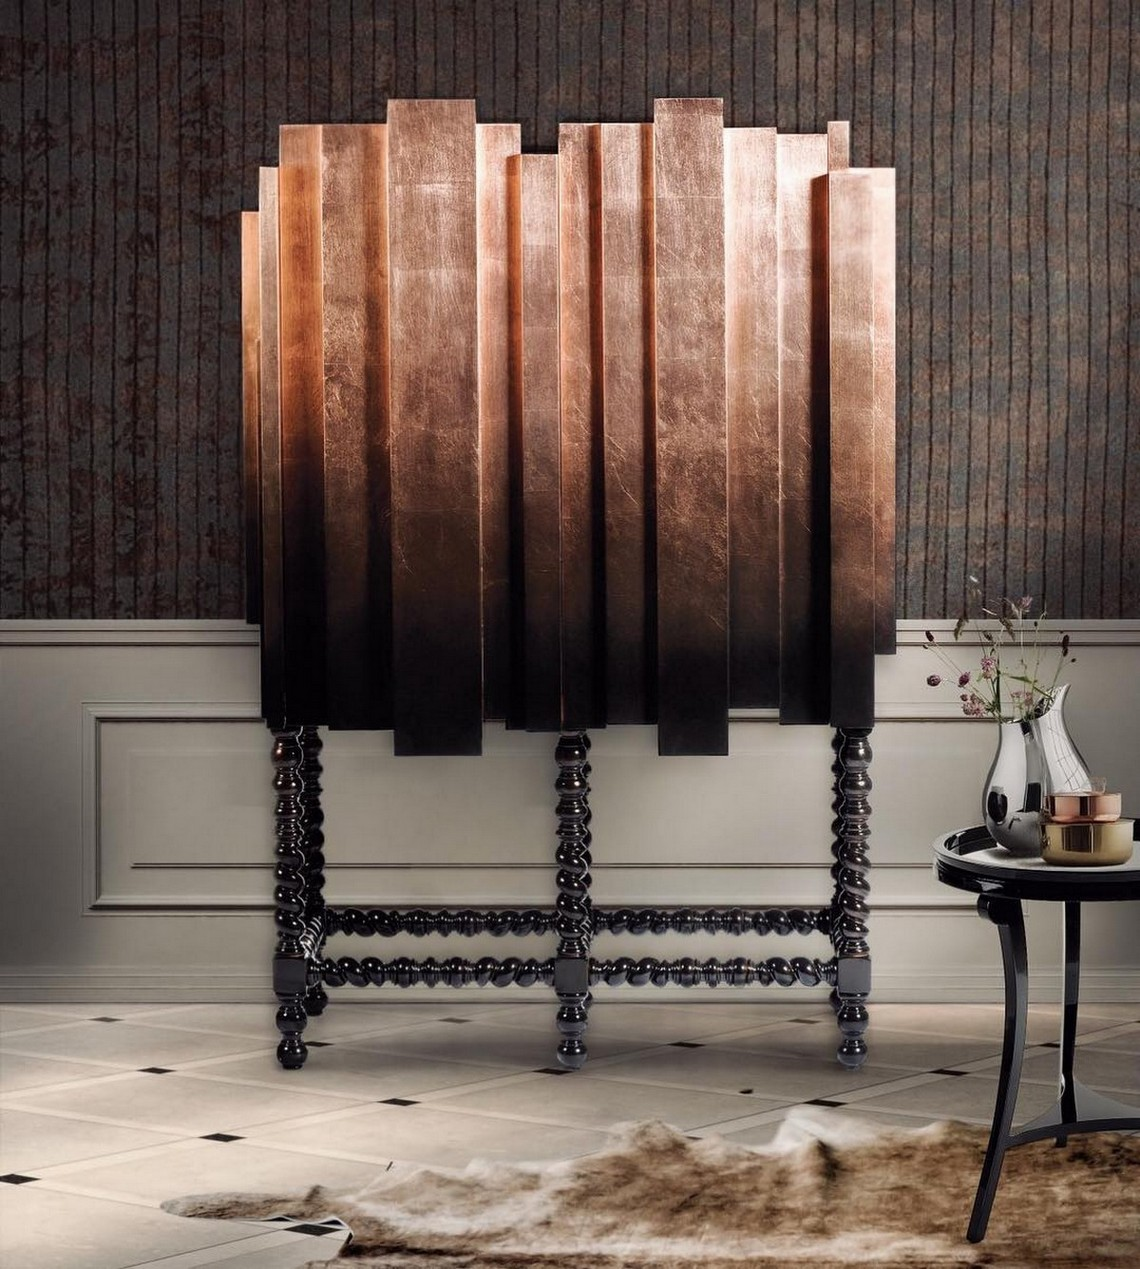 Modern Living Room Cabinets Inspired by History modern living room cabinets Modern Living Room Cabinets Inspired by History dmanuel2